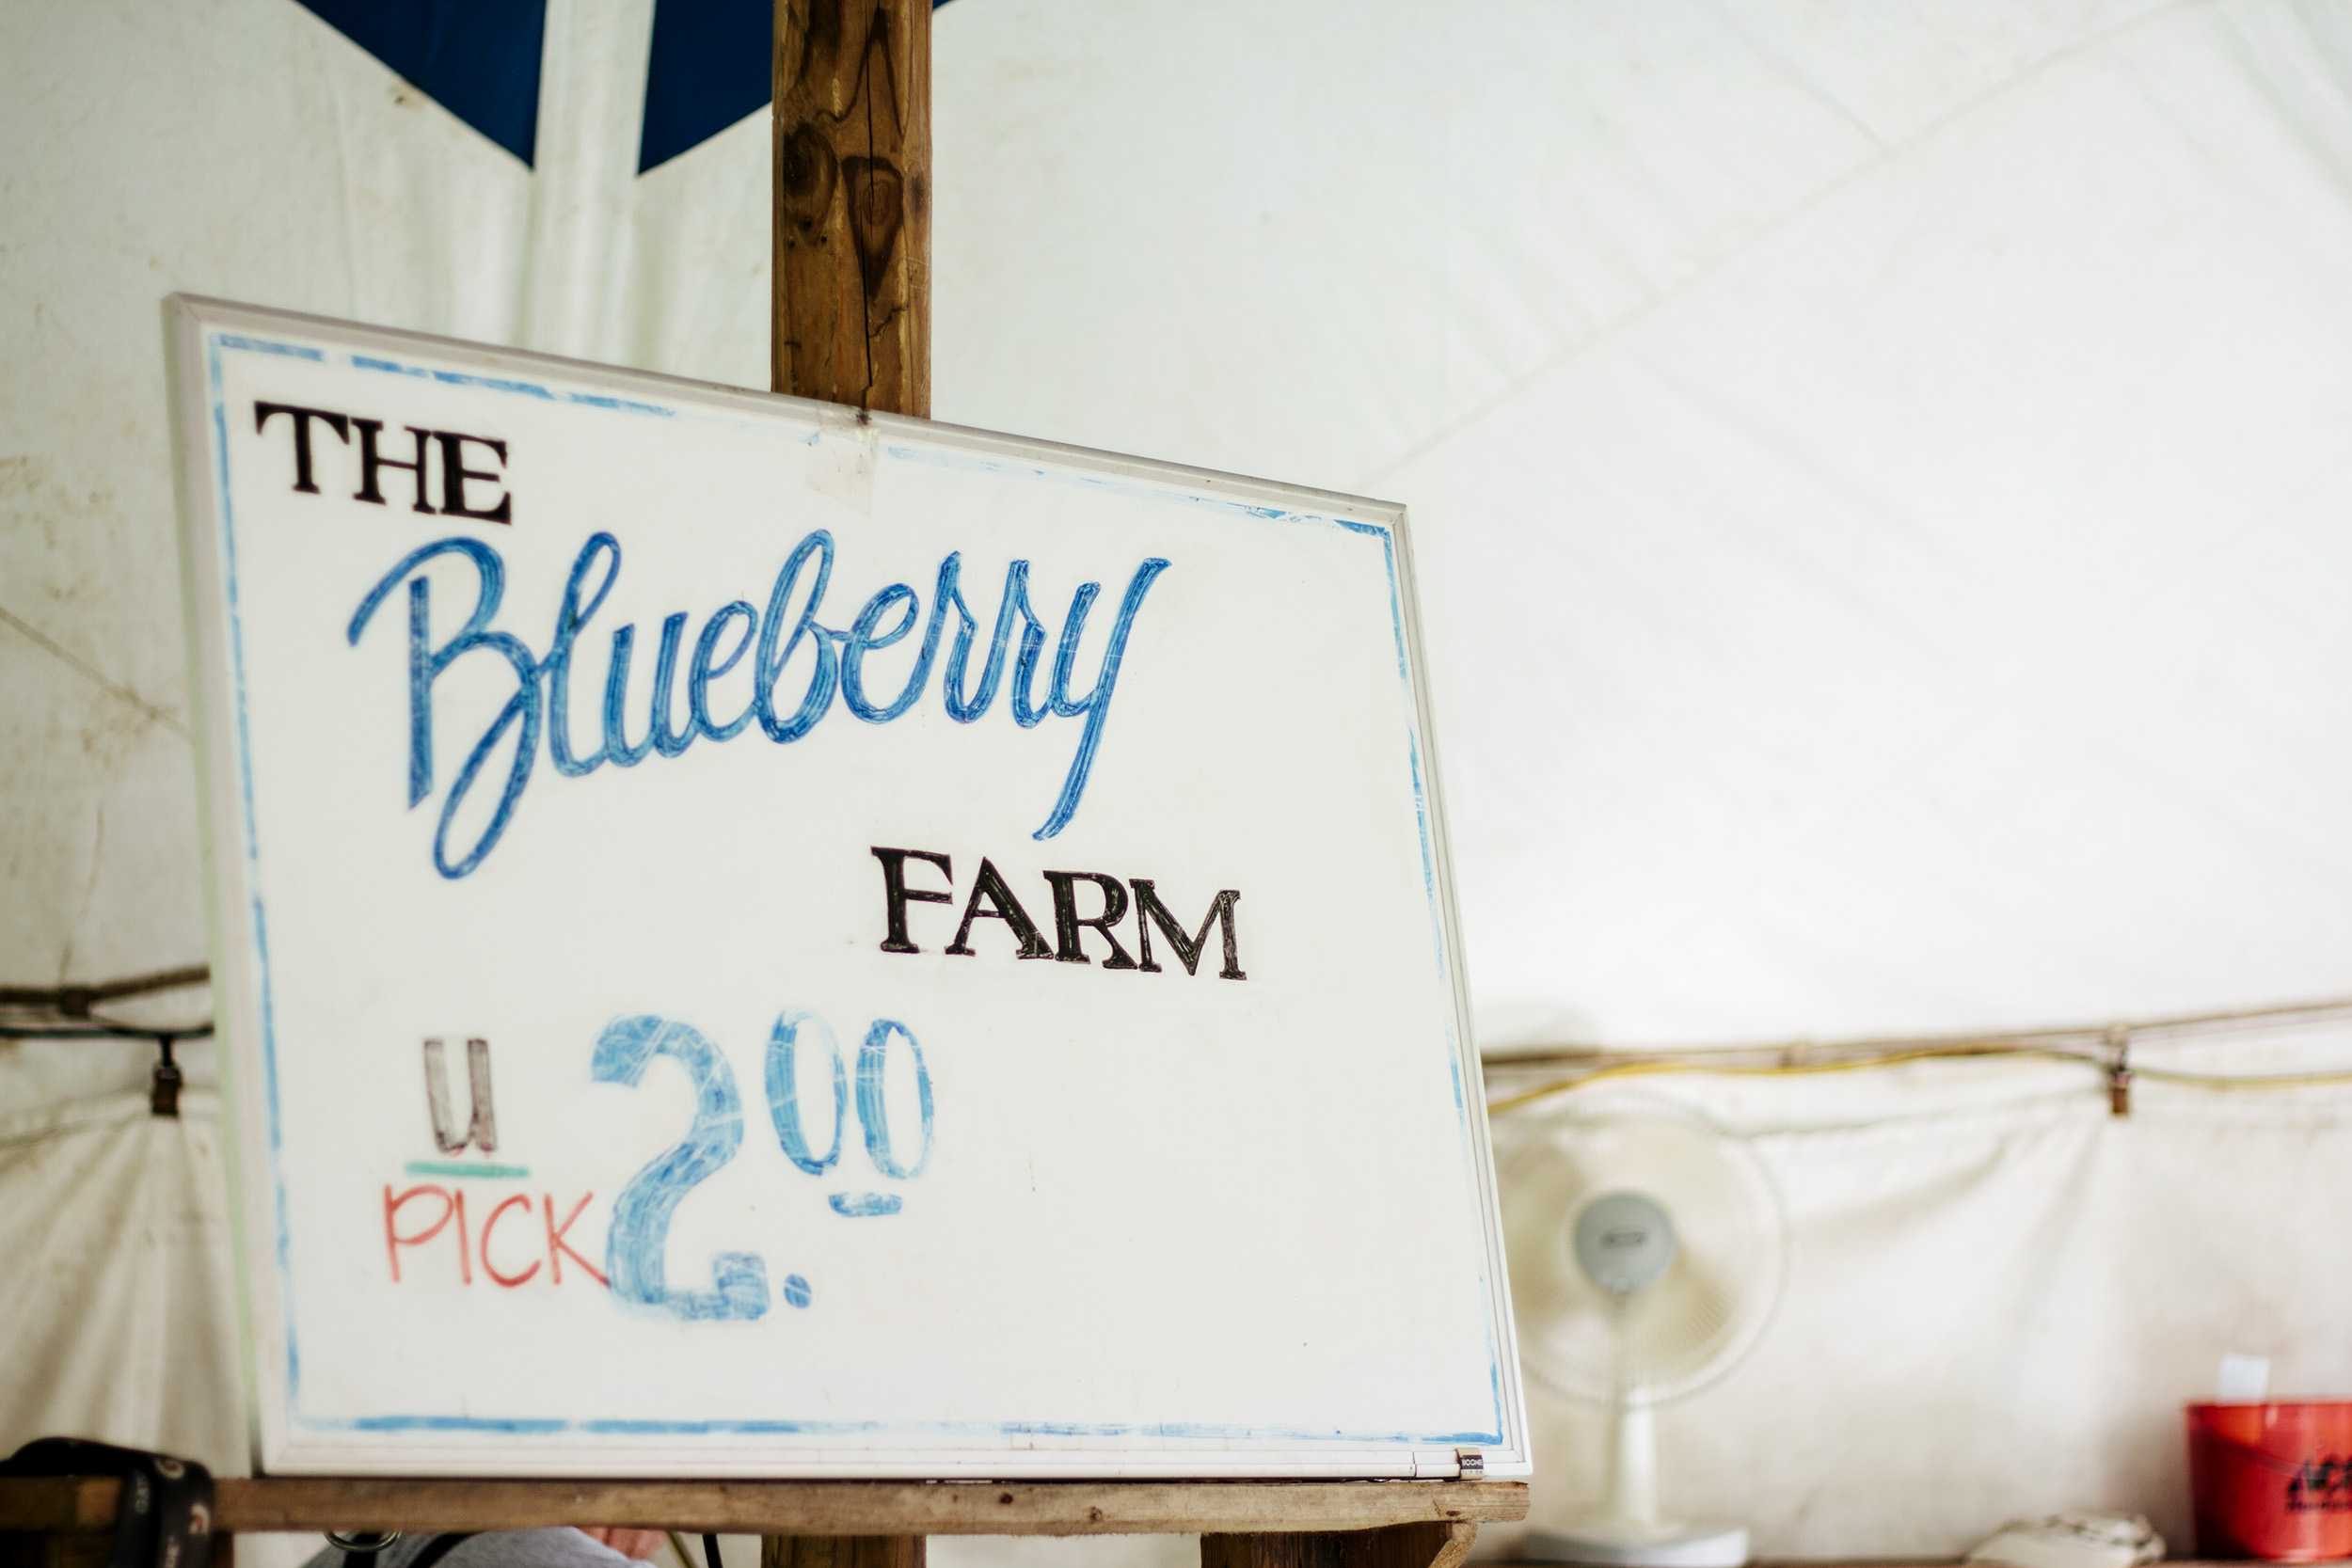 blueberry farm sign.jpg